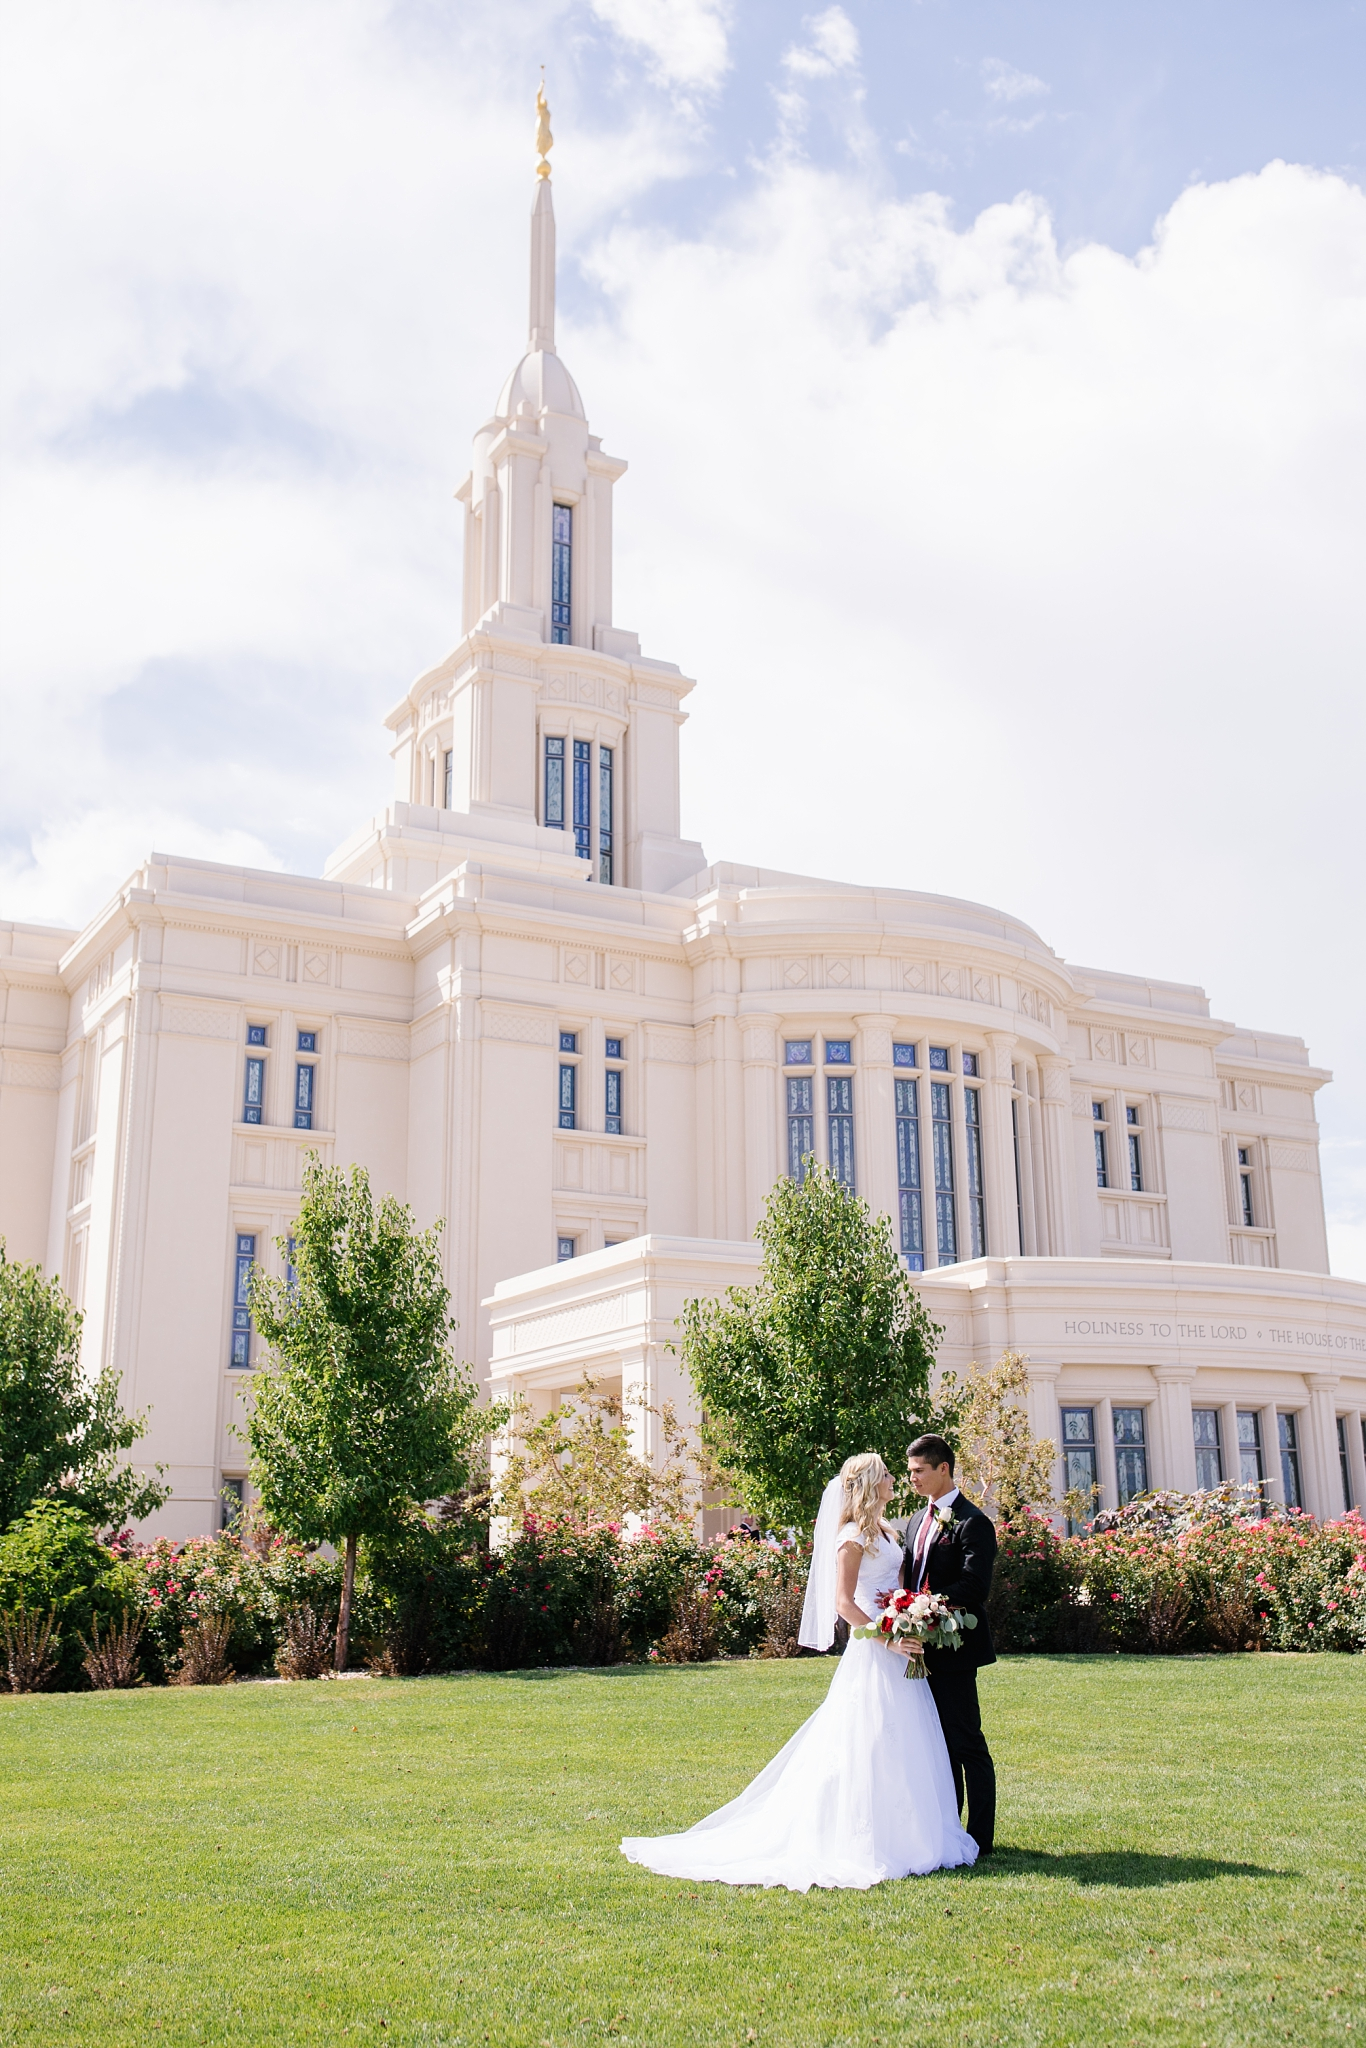 HannahChaseWedding-160_Lizzie-B-Imagery-Utah-Wedding-Photographer-Bridal-Photography-Payson-Utah-Temple-Clarion-Gardens-Catering-and-Events-Center.jpg